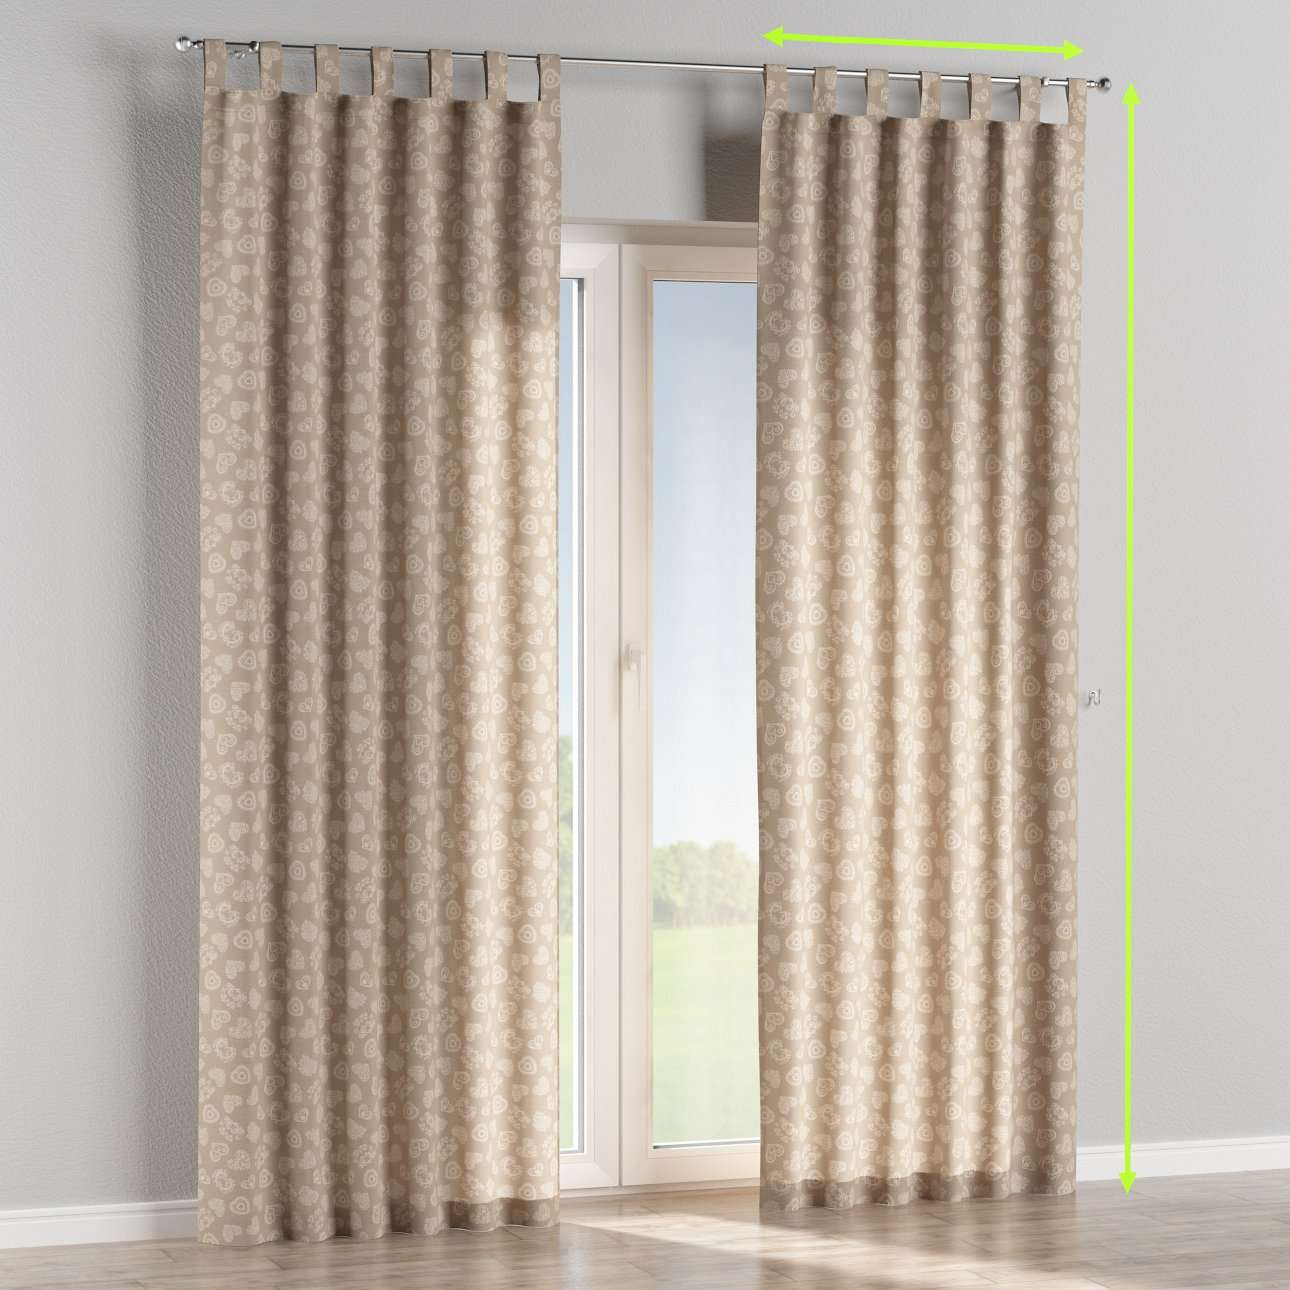 Tab top lined curtains in collection Flowers, fabric: 140-56